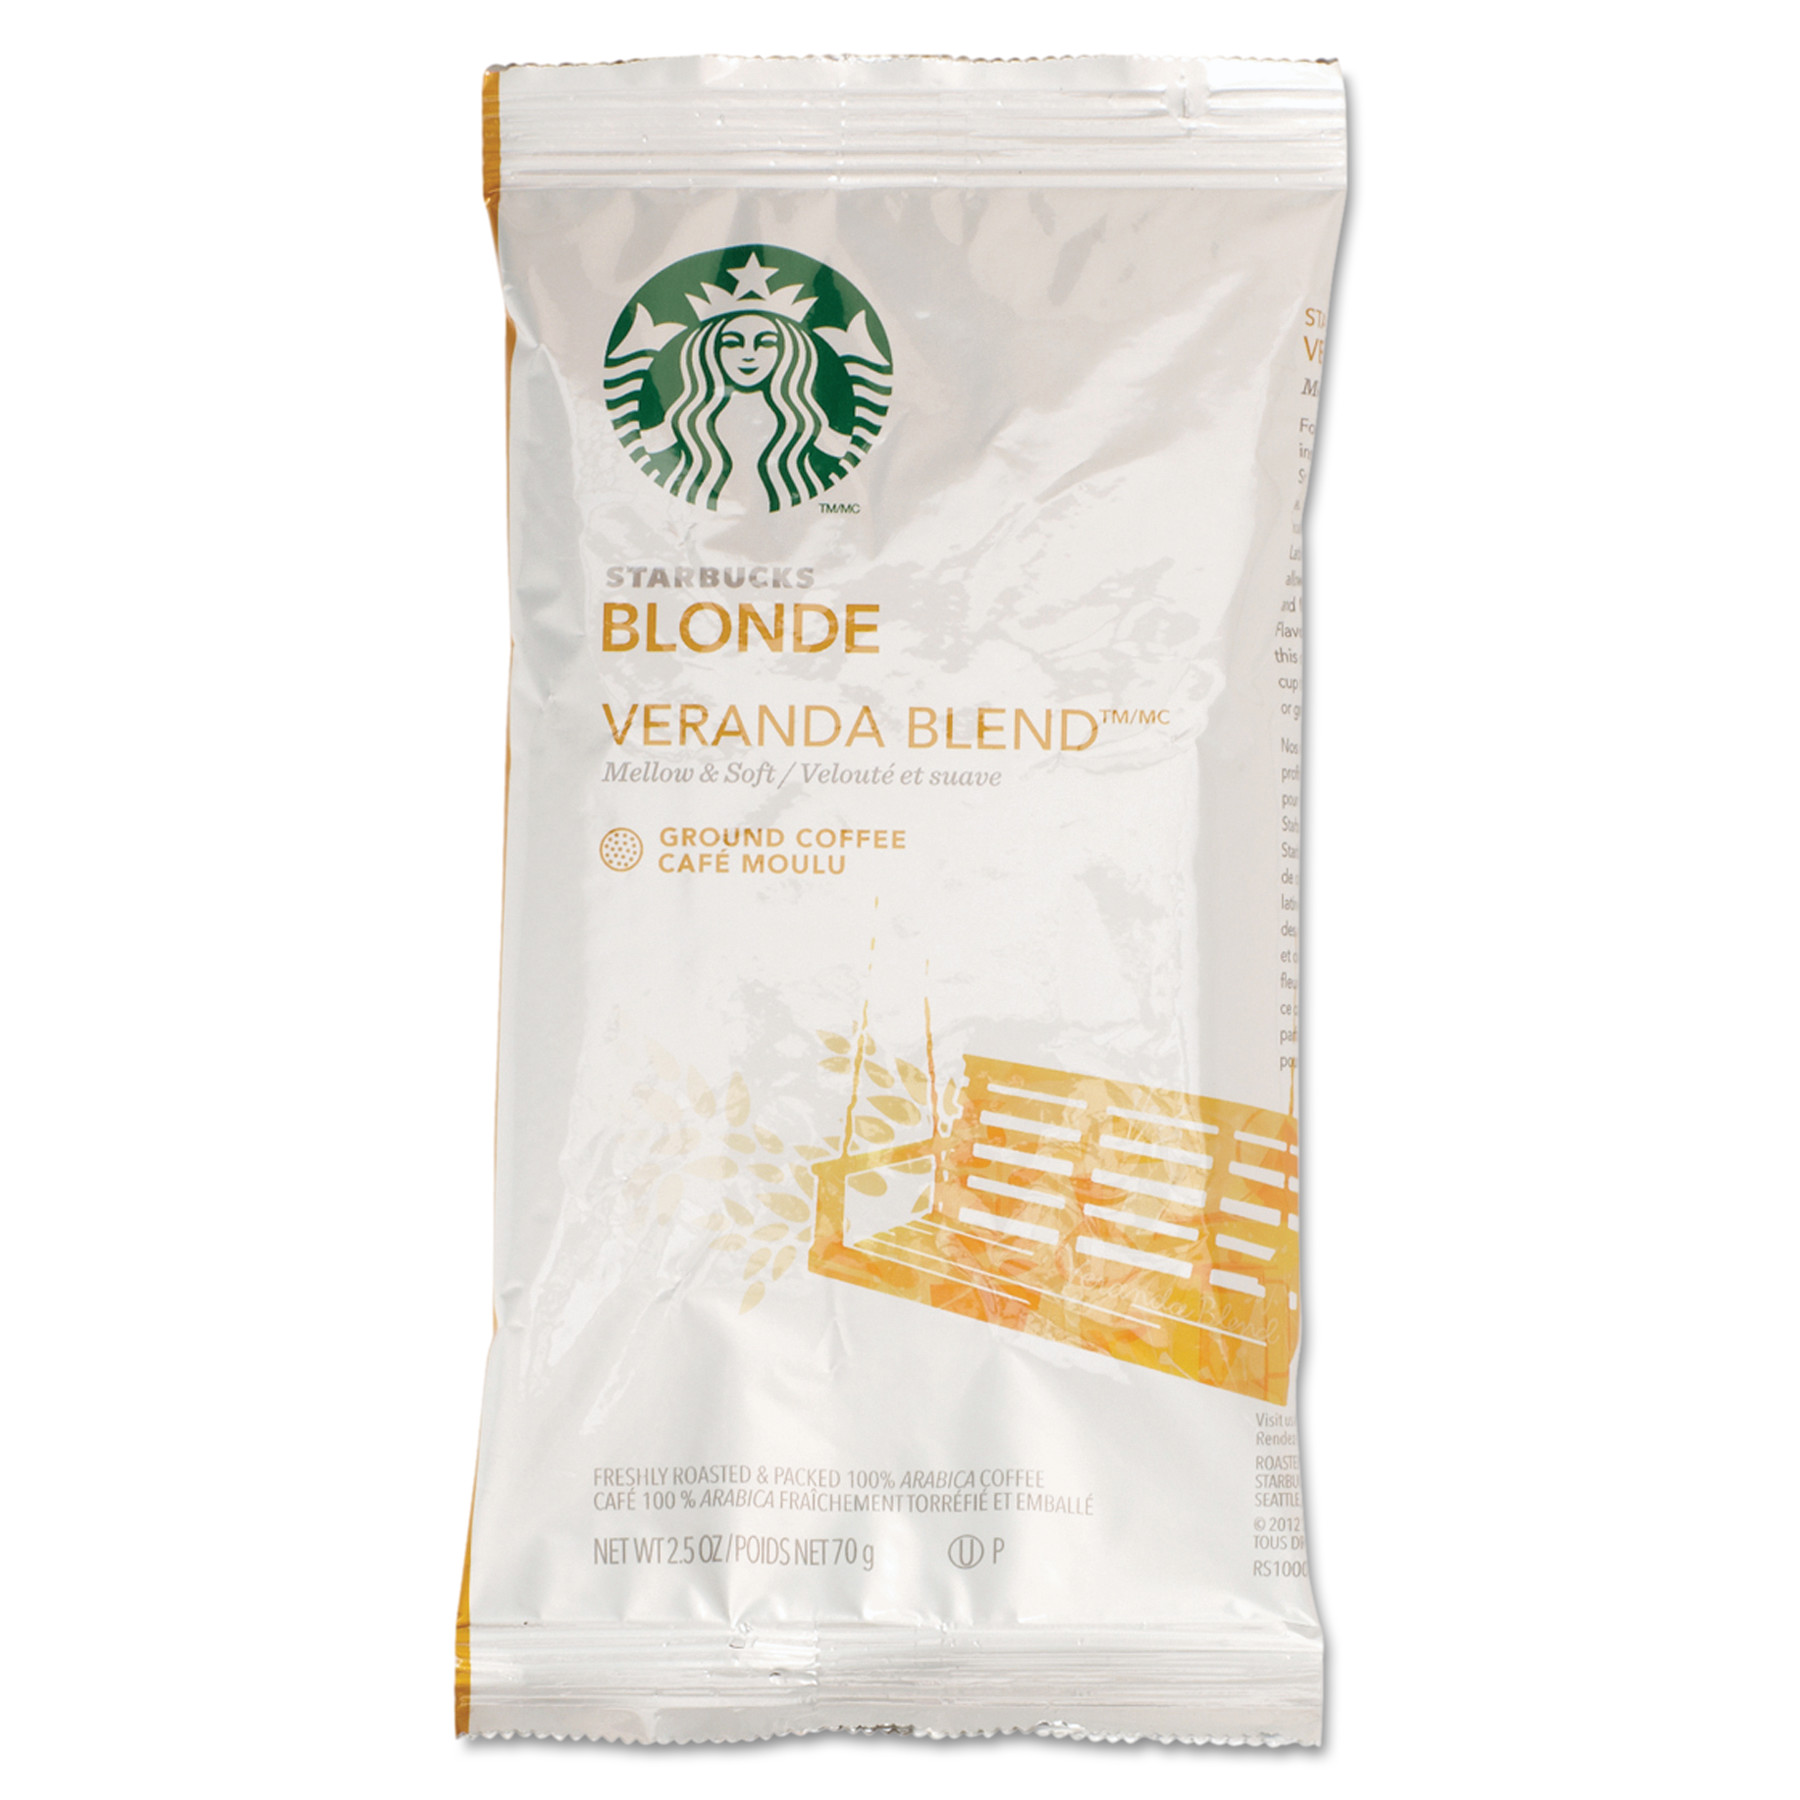 Starbucks Coffee, Veranda Blend, 2.5oz, 18 Box by STARBUCKS COFFEE COMPANY